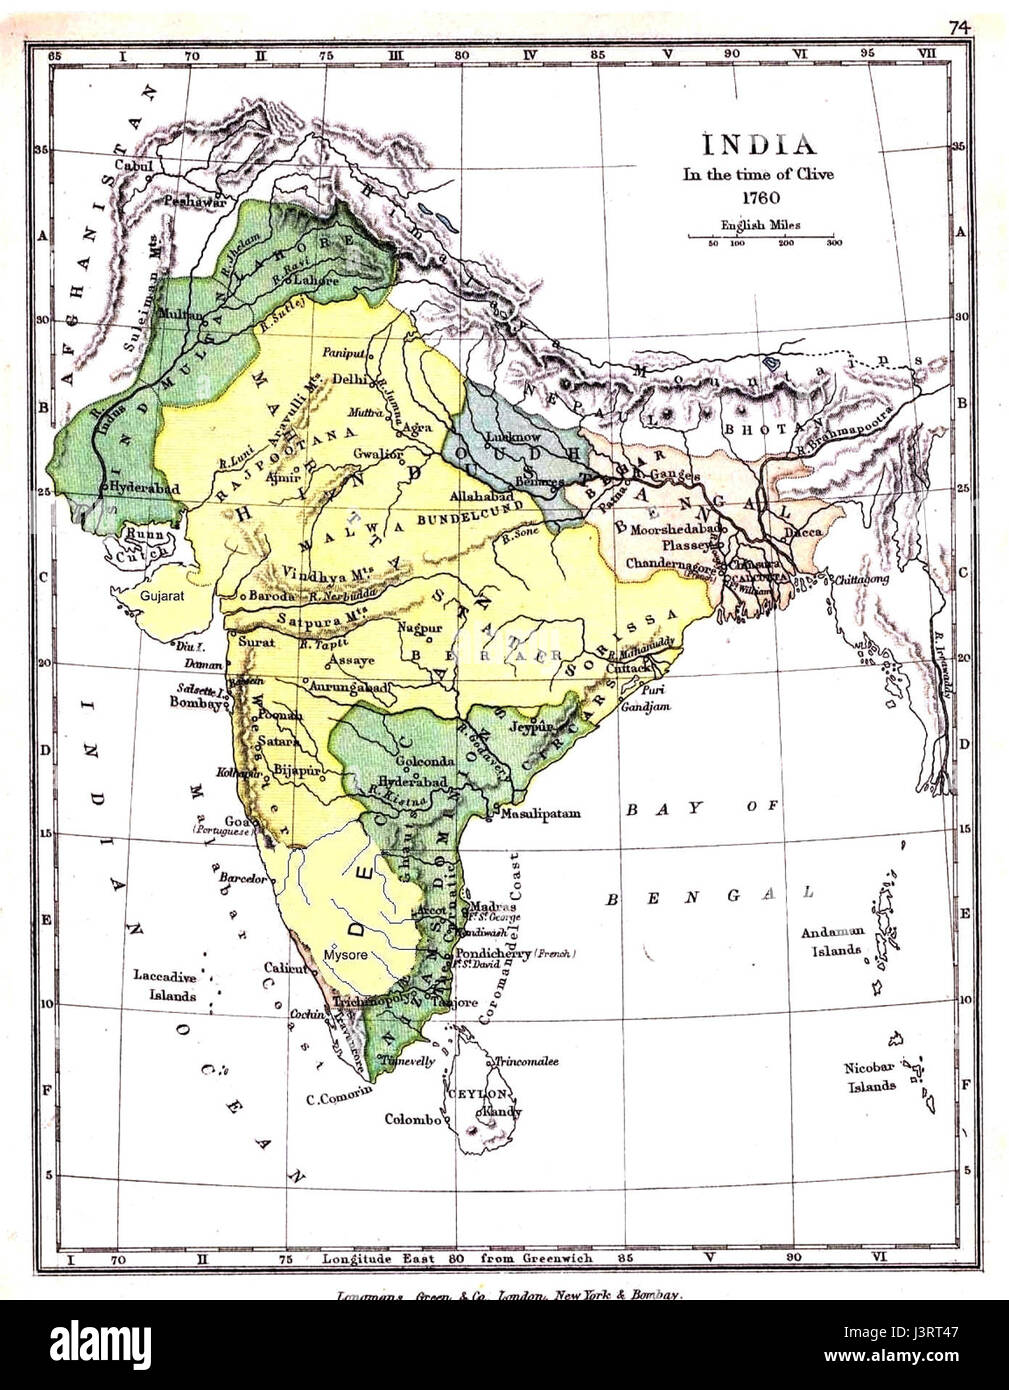 India 1760 map Stock Photo: 140050743 - Alamy on strasbourg map, gstaad map, basel map, hanover map, swiss alps map, zermatt map, dissolution soviet union map, lugano map, wald map, stockholm sweden map, verbier map,